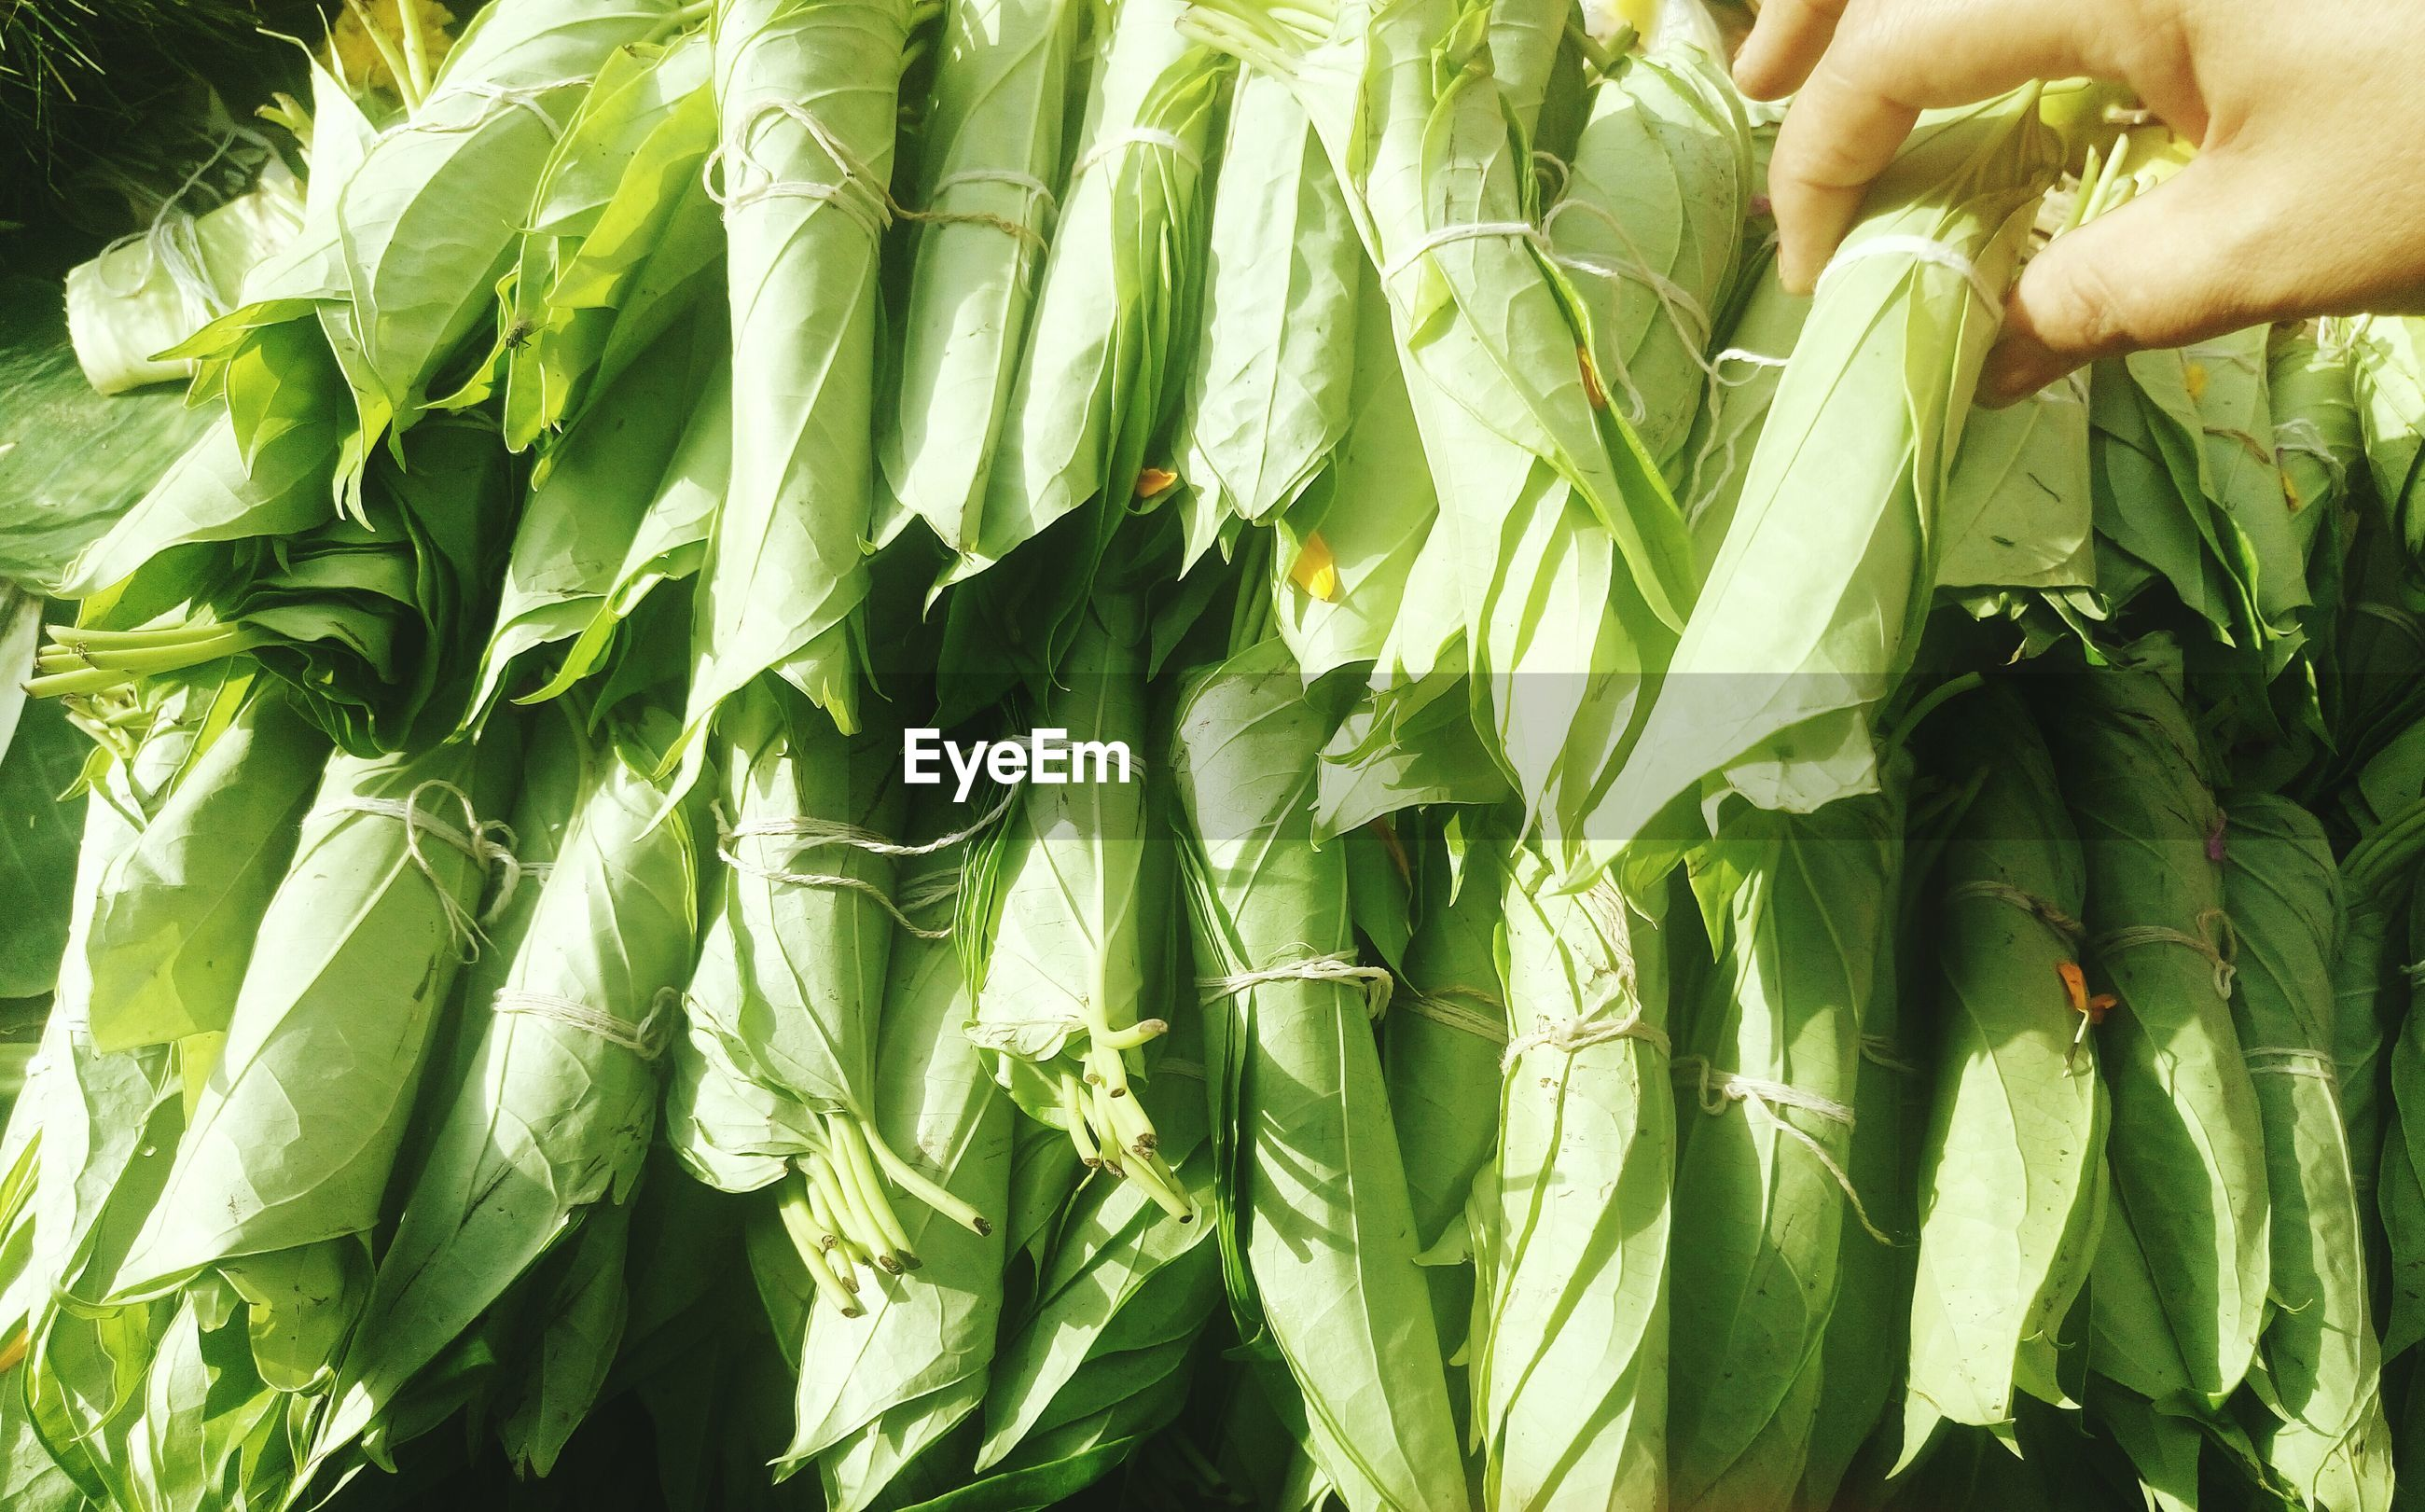 Cropped hand of person holding betel leaves for sale at market